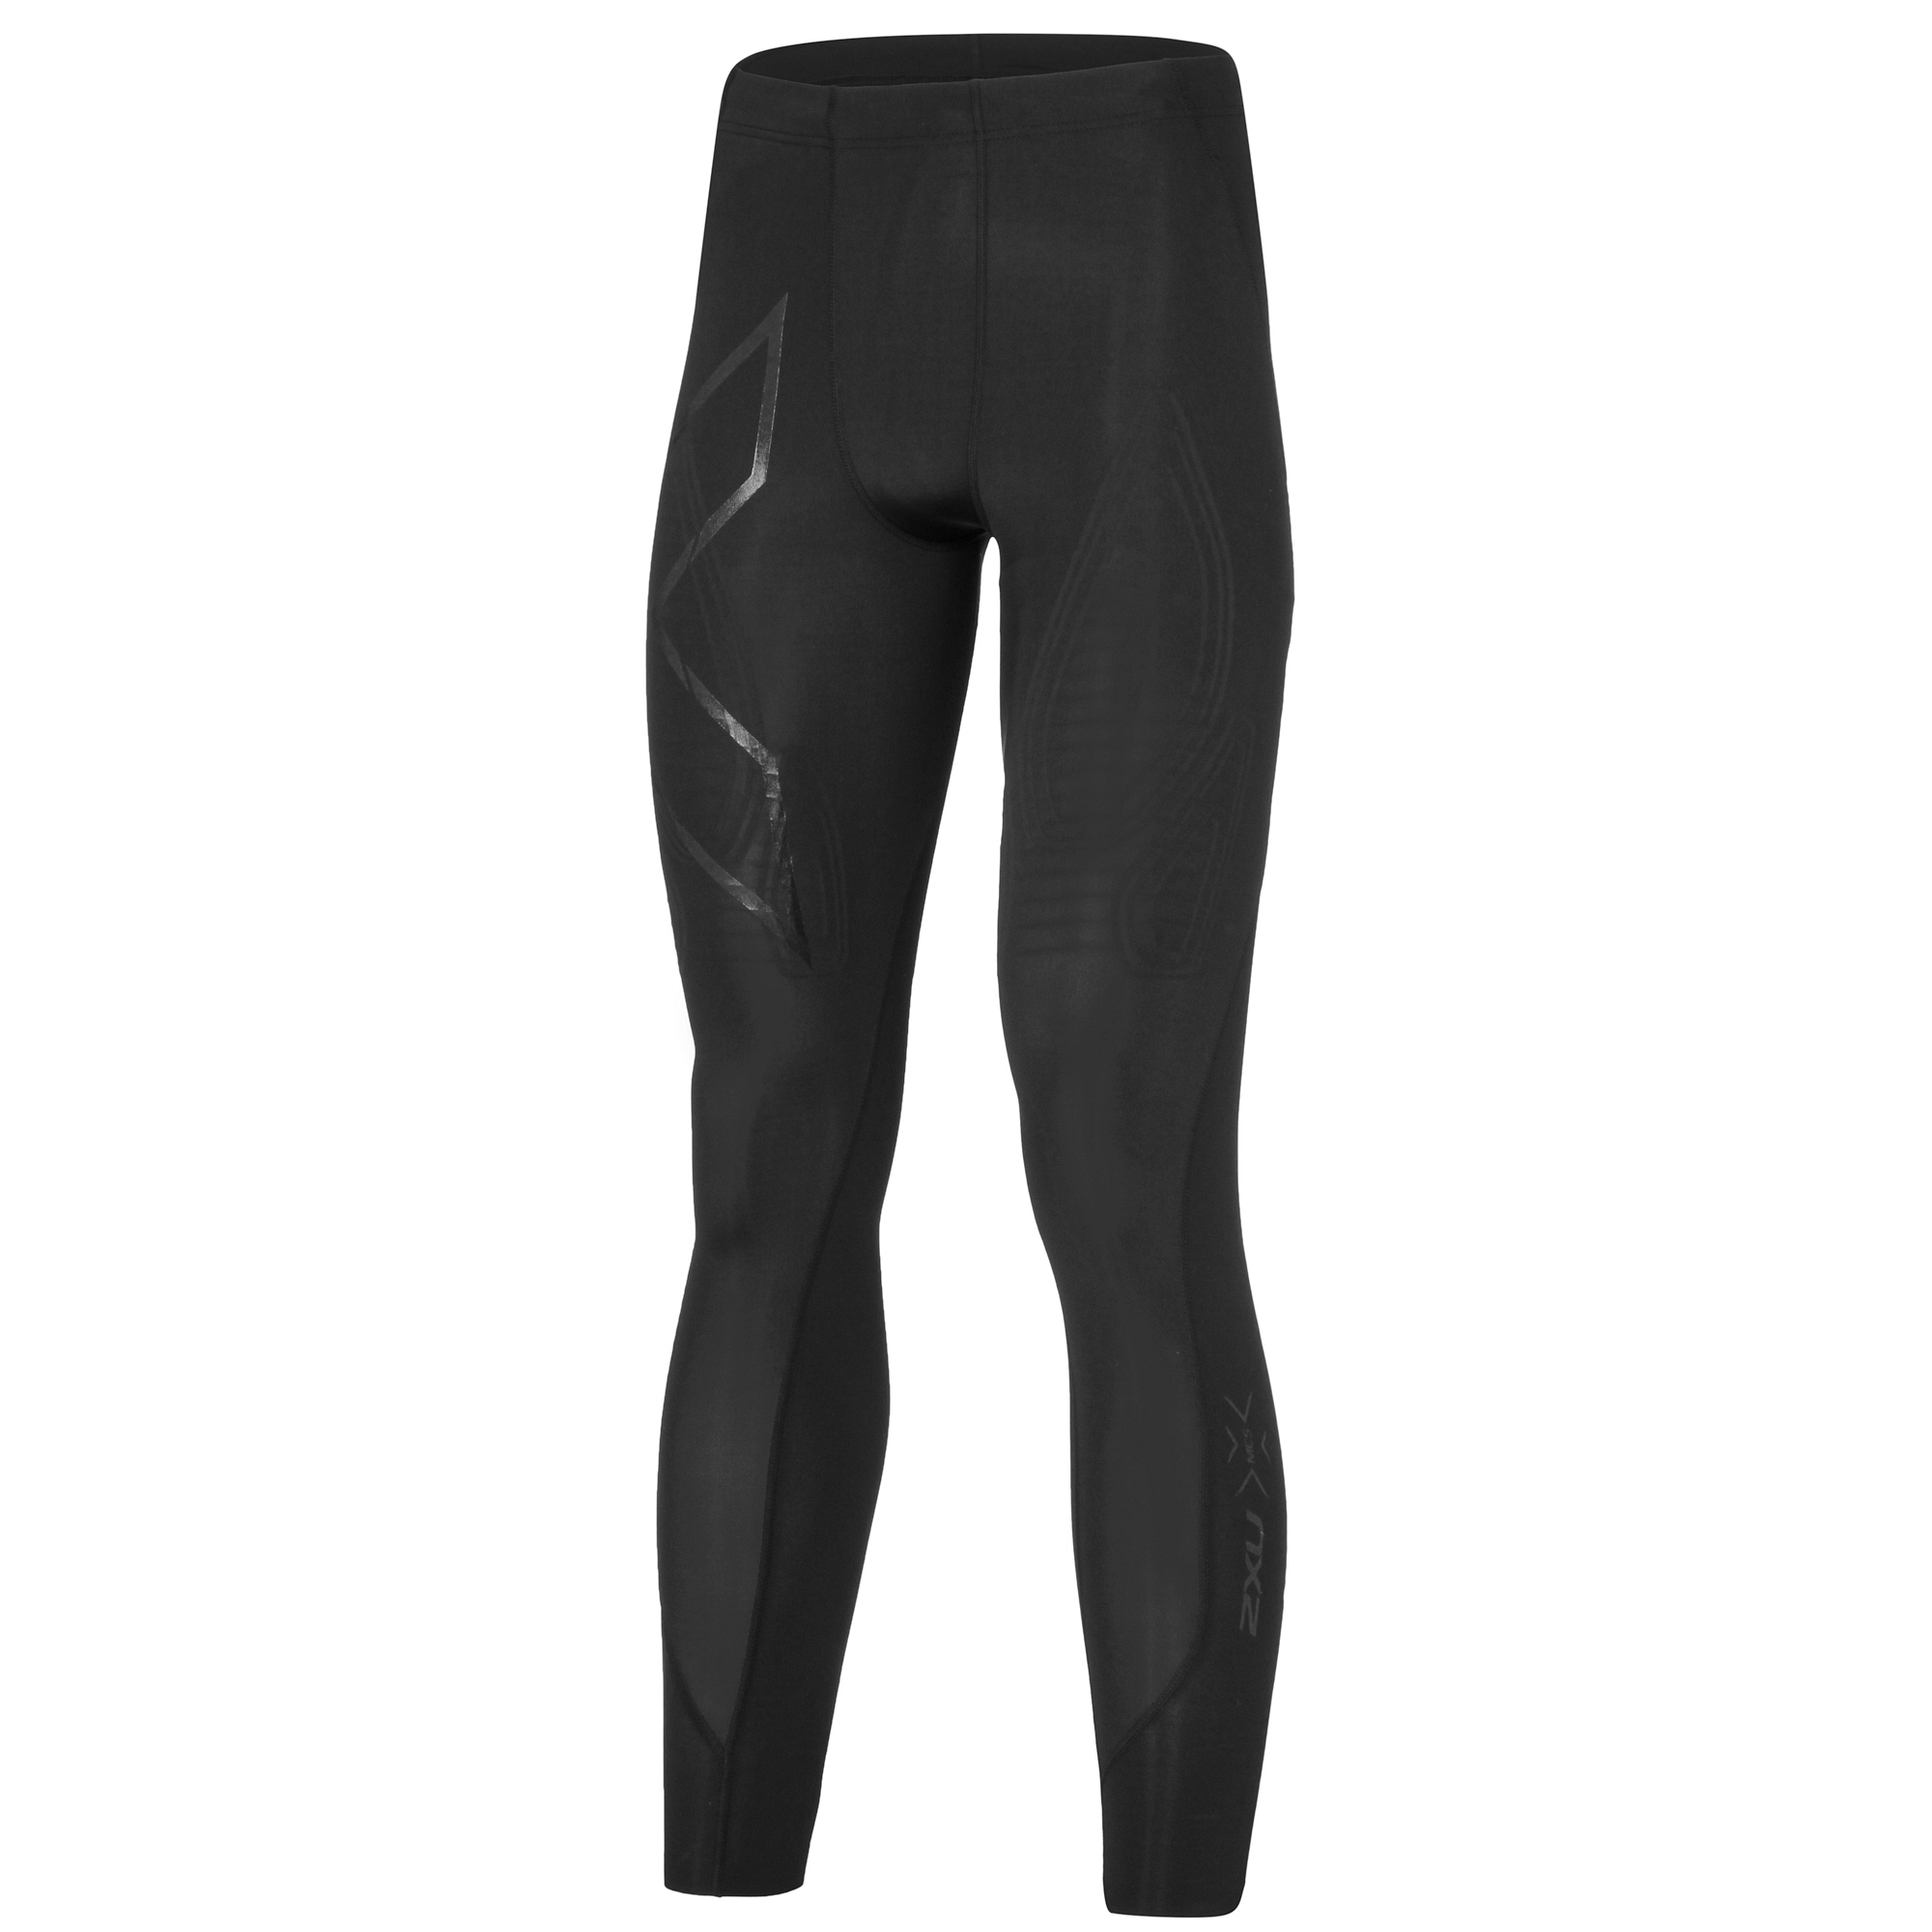 2XU MCS Cross Training Kompressionstights - Herre | Compression